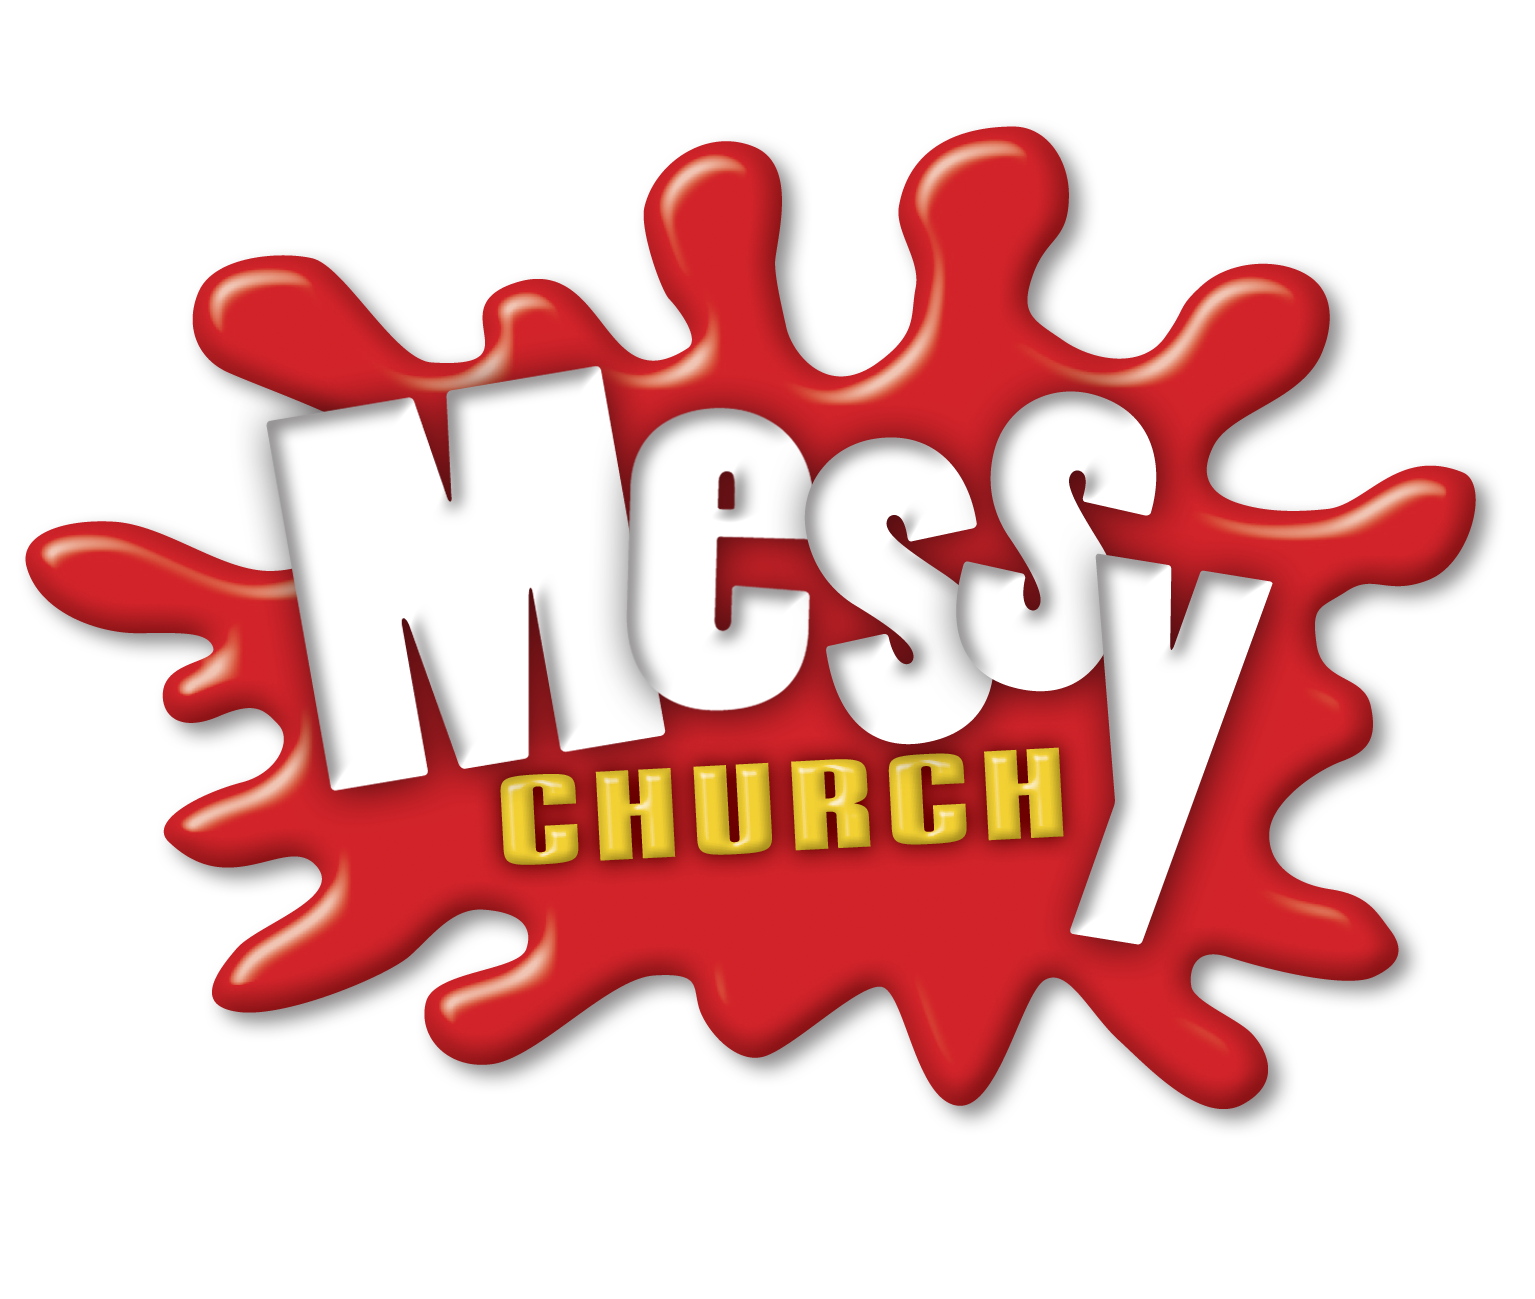 Official Messy Church logo - 1